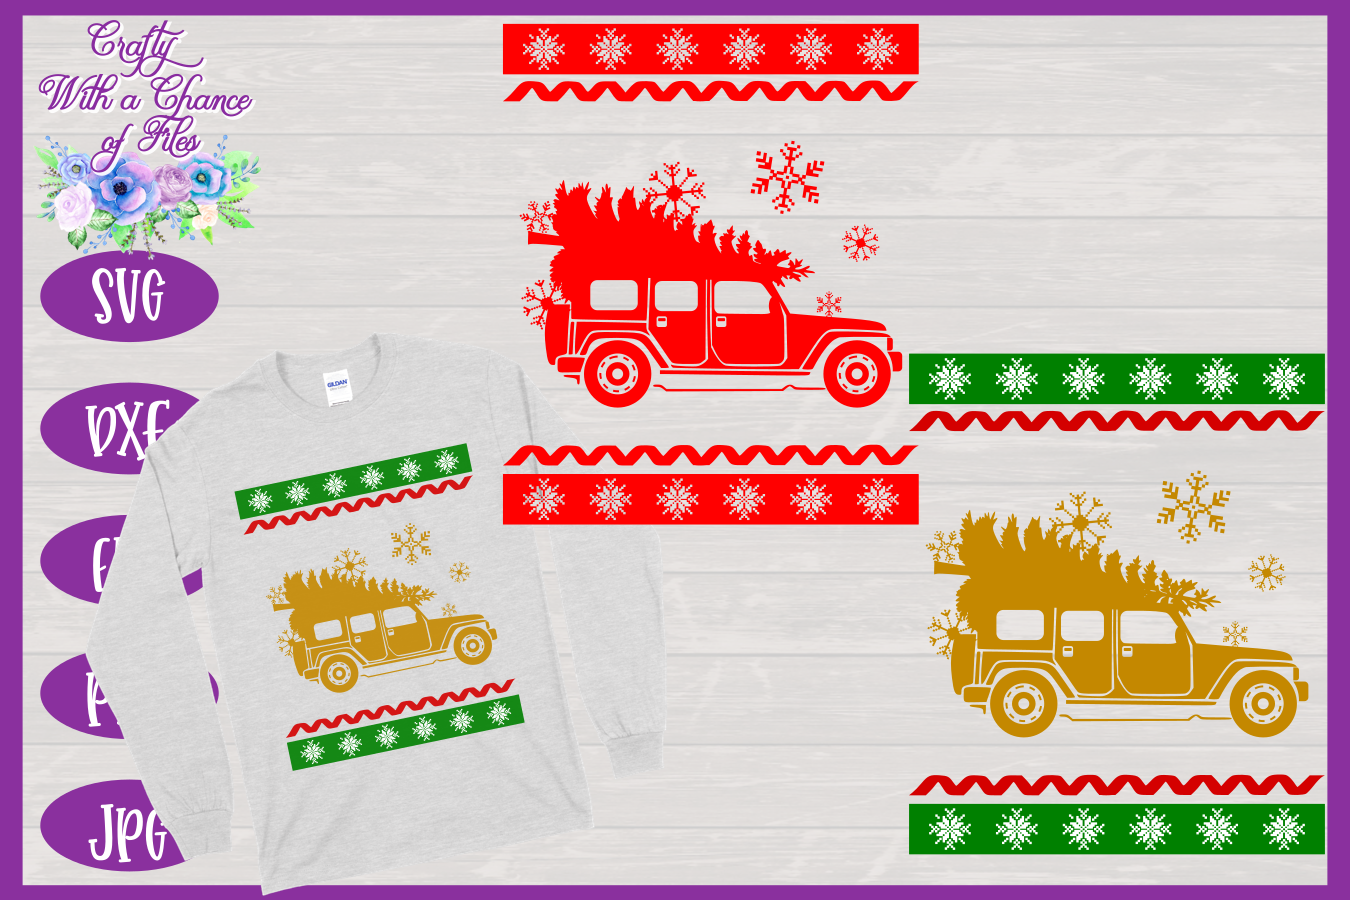 Christmas SVG - Ugly Sweater Party Shirt Design example image 1